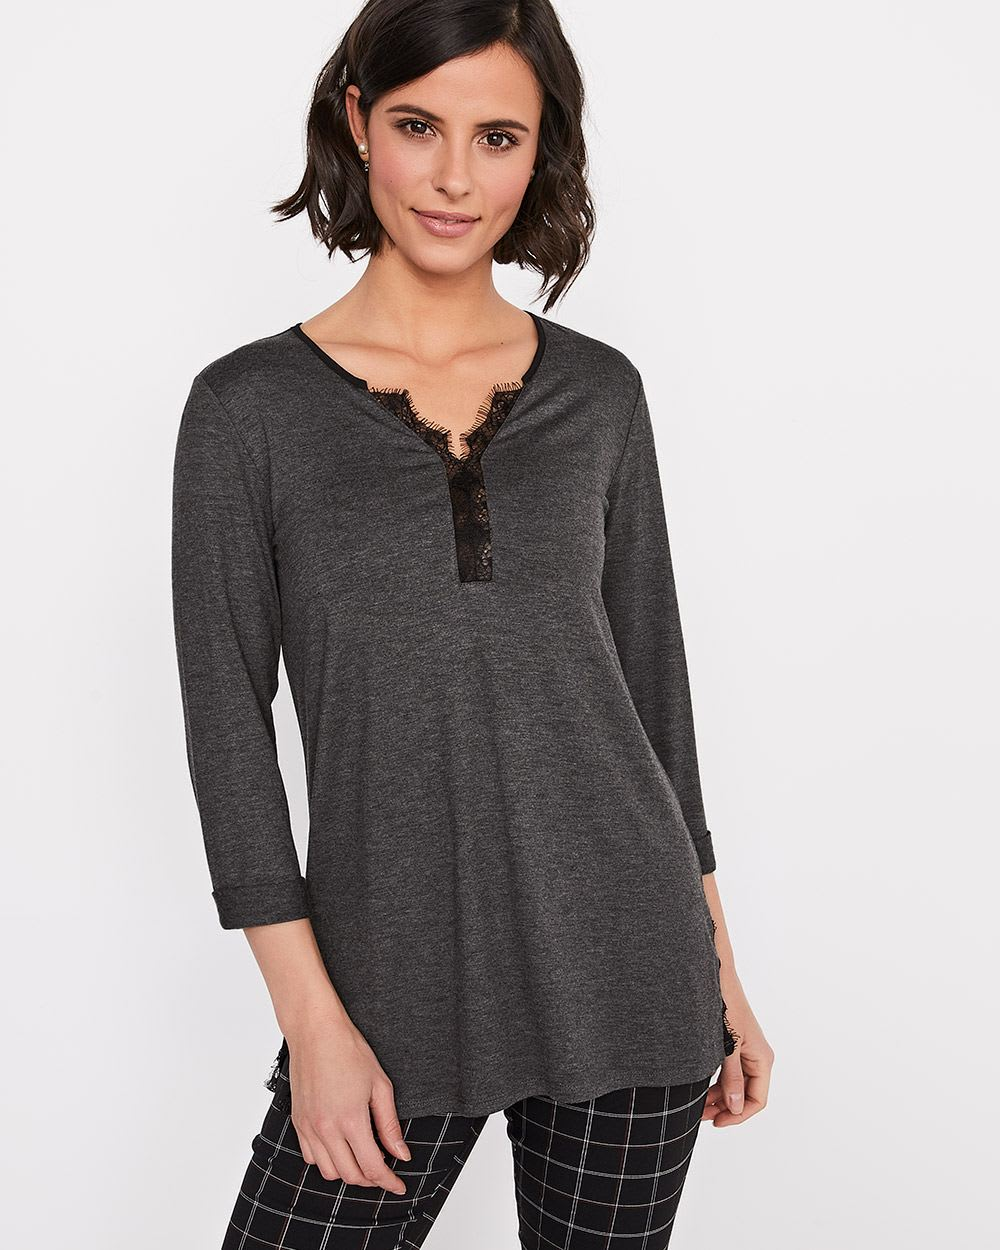 3 4 sleeve henley t shirt with lace rw co for 3 4 henley shirt